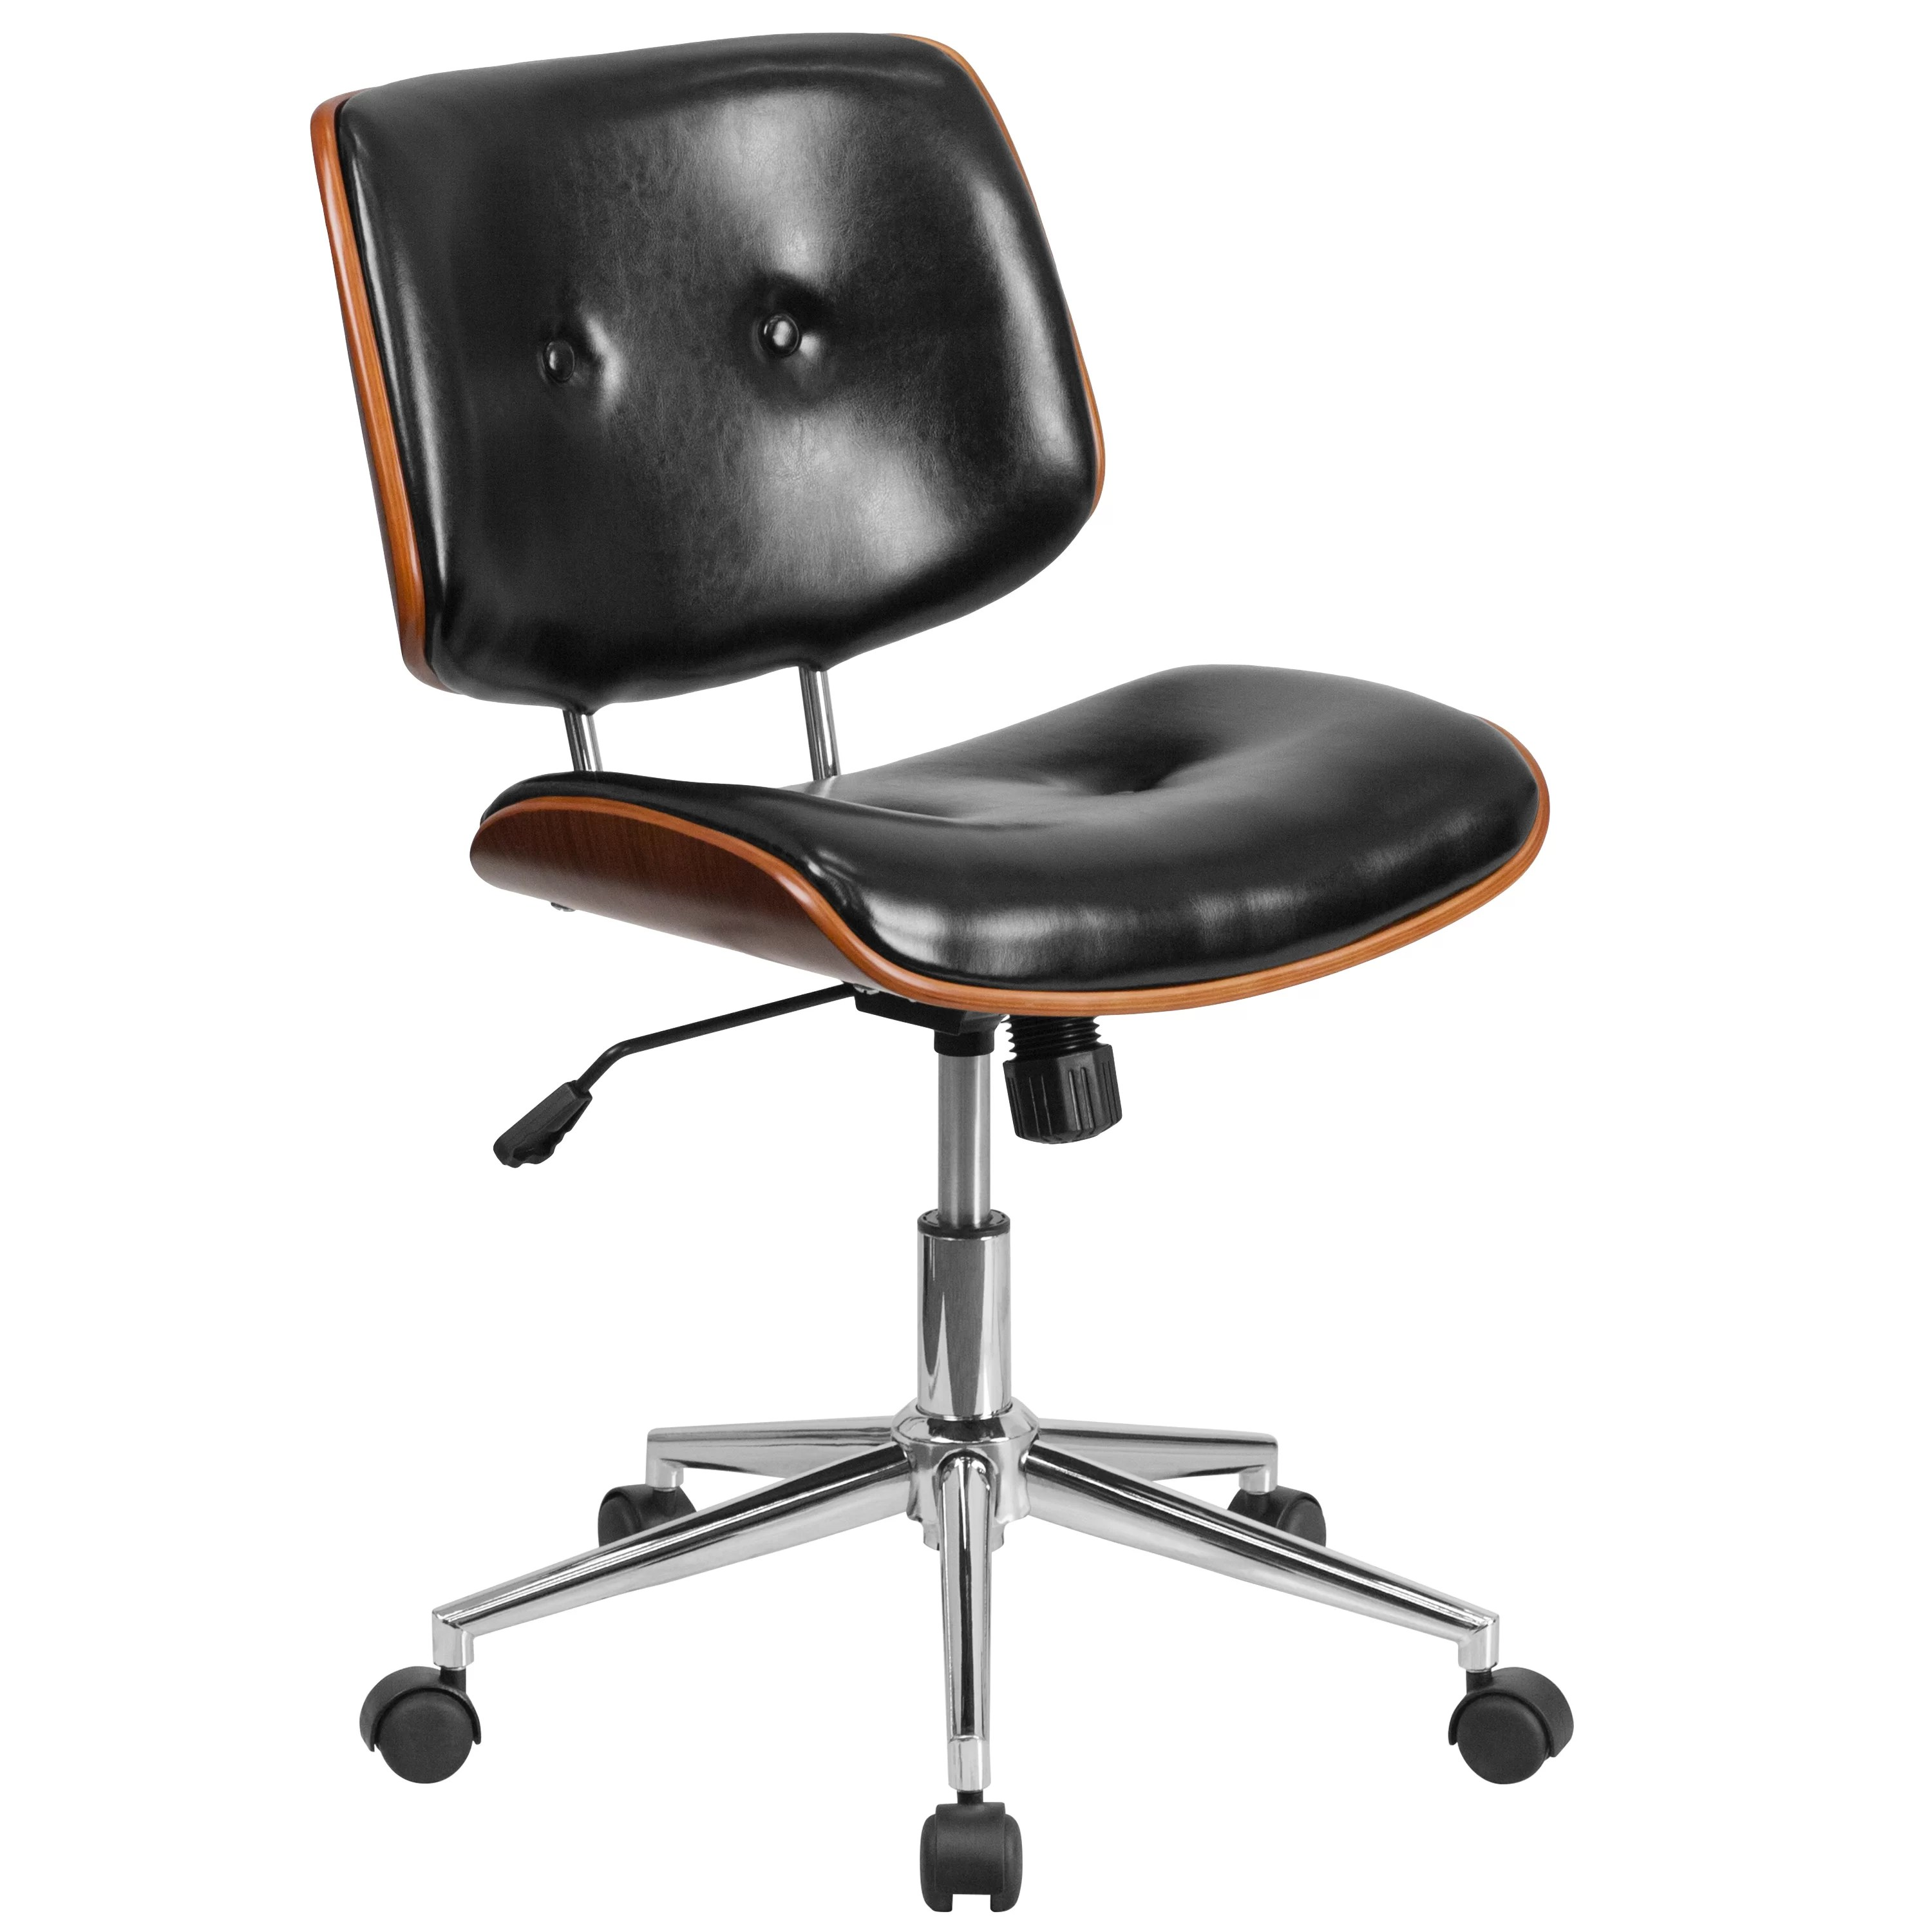 black leather desk chairs orange beach chair symple stuff wysocki mid back reviews wayfair